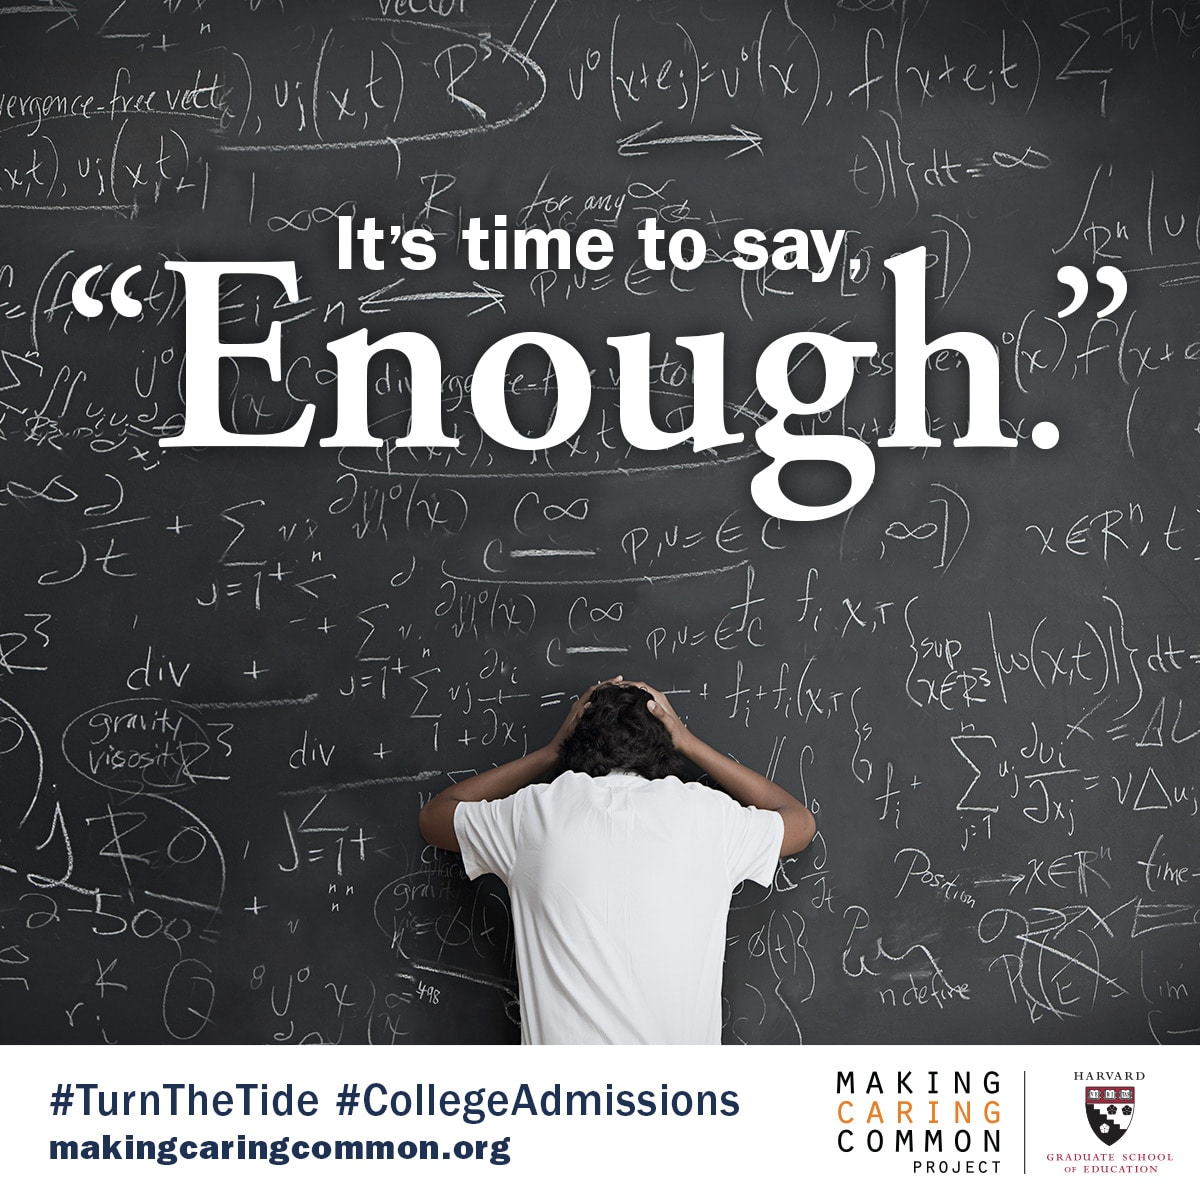 Turn the Tide, Admissions and Turn the Tide, Turning the Tide in College Admissions